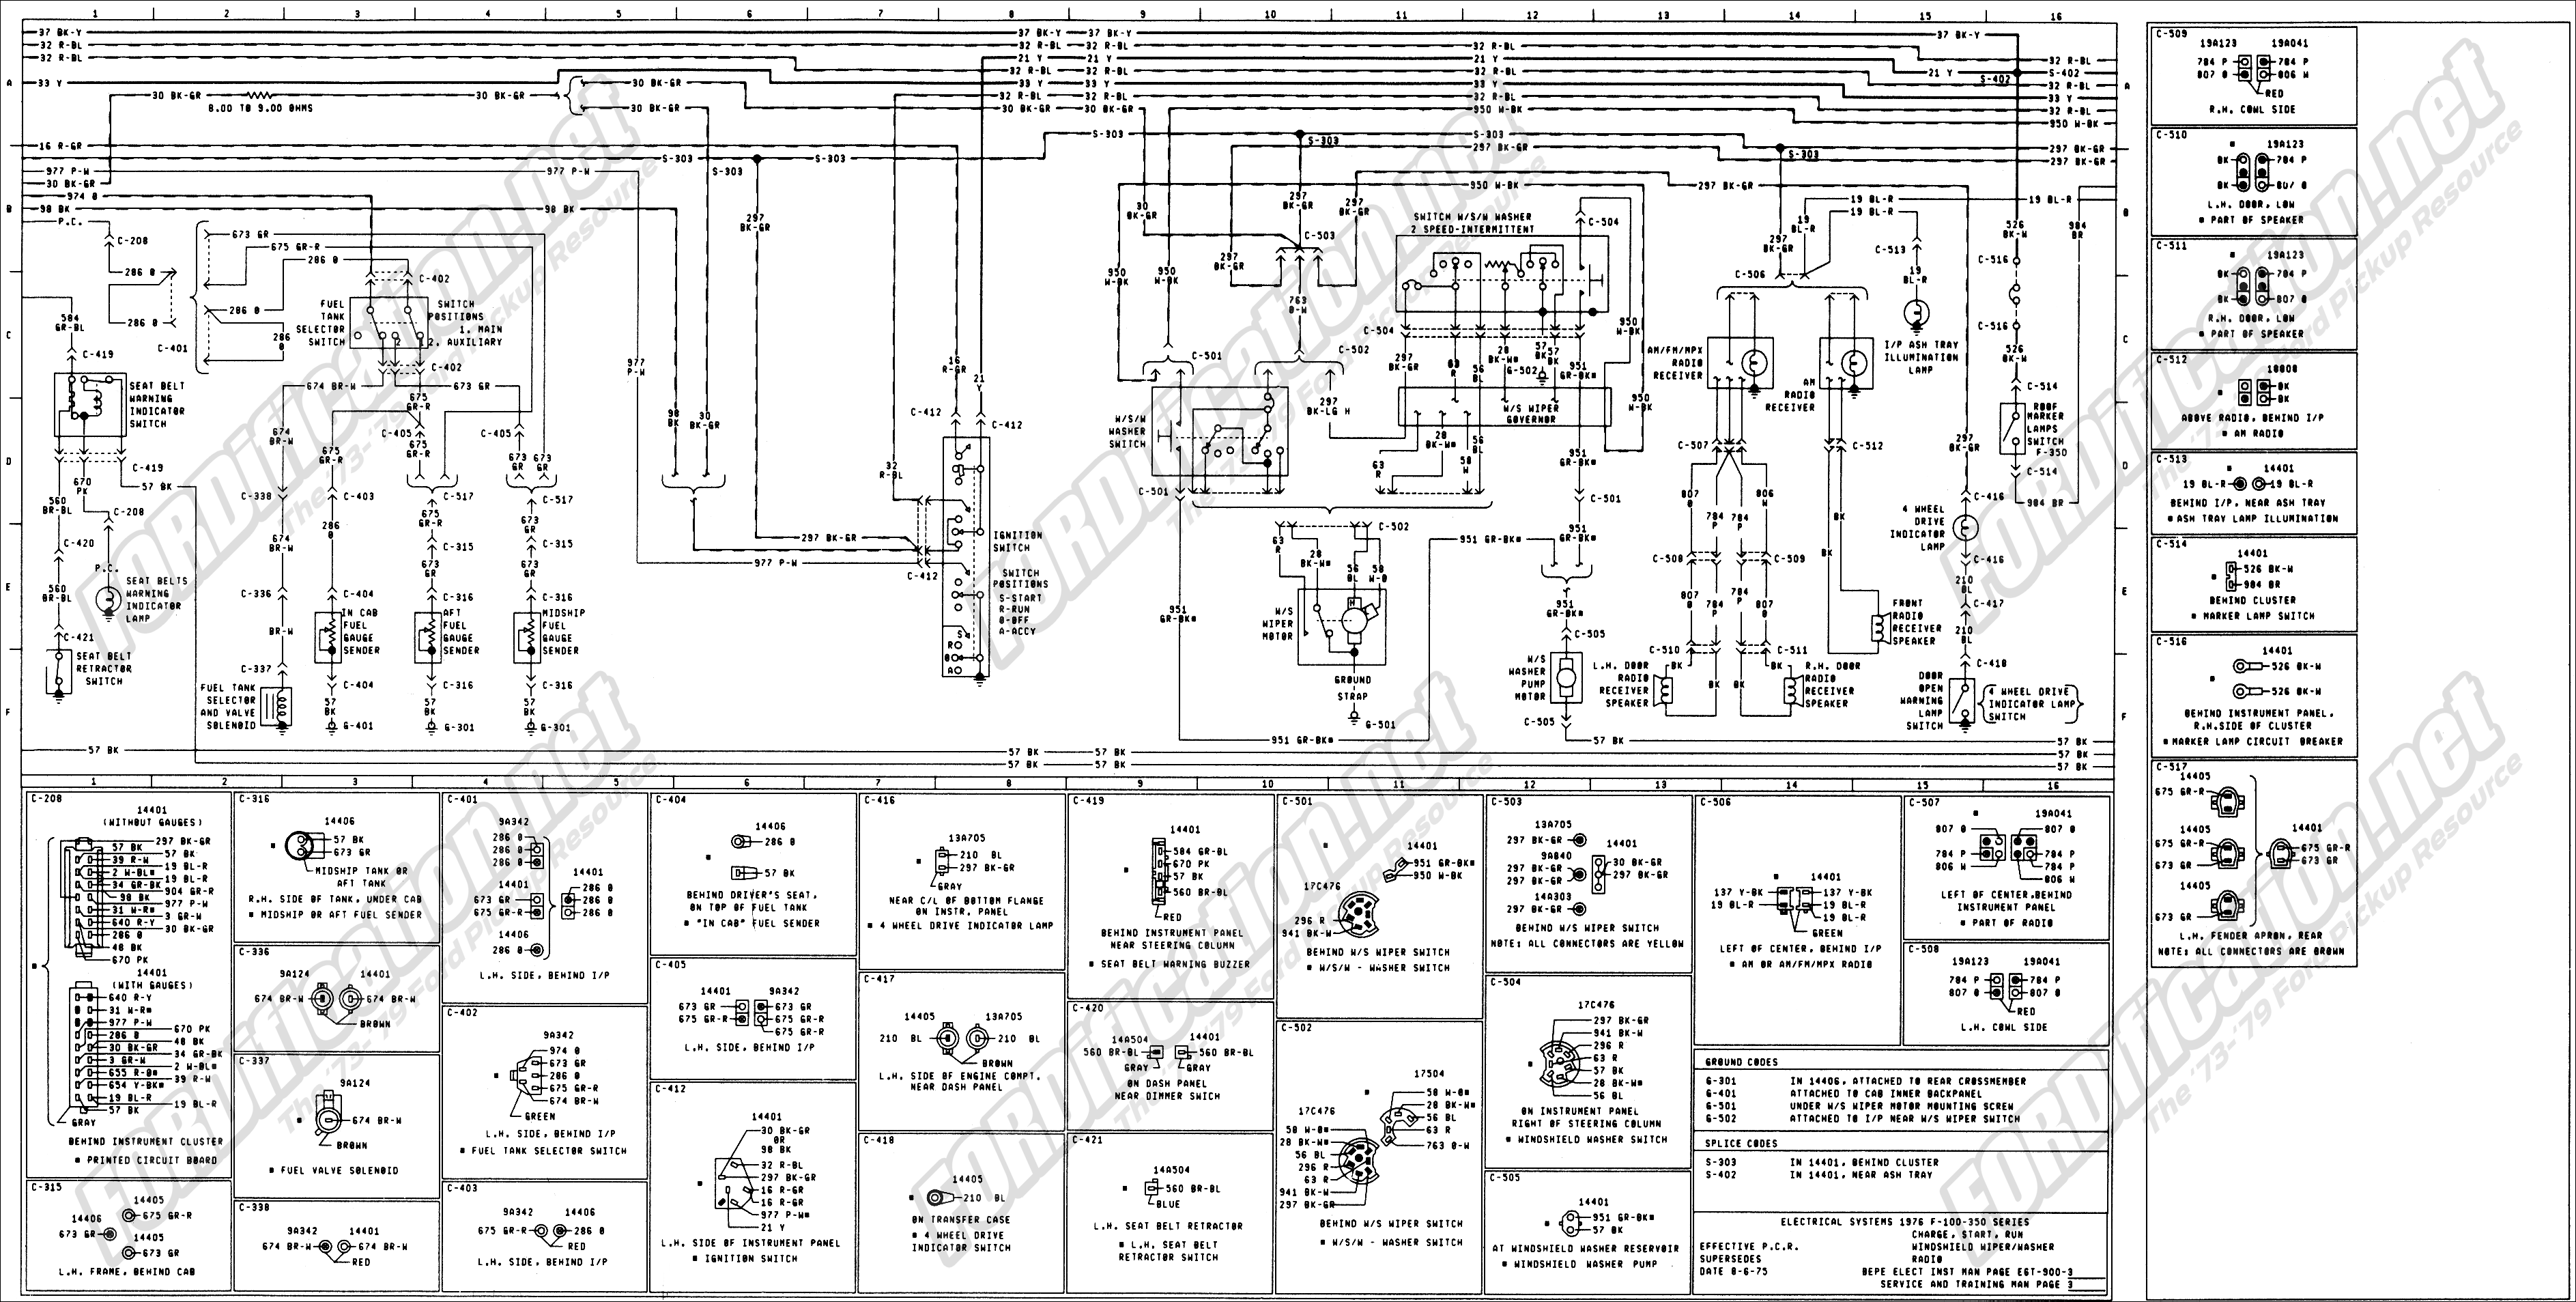 Ford F Wiring Diagram on 1977 ford f150 firing order, 1977 ford f150 frame, 1977 ford f150 power steering, 1978 ford truck wiring diagram, 1977 ford maverick wiring diagram, 1977 ford ltd wiring diagram, 1979 ford f-150 wiring diagram, 1977 ford f150 cover, 1977 ford f150 neutral safety switch, 1977 ford f150 carburetor, 1977 ford f-250 wiring diagram, 1977 ford f150 radiator, 1977 ford f150 solenoid, 1977 ford f150 starter relay location, 1977 ford f150 engine swap, 1977 ford f150 owners manual, 1977 ford pinto wiring diagram, 1977 ford econoline wiring diagram, 84 ford f 150 wiring diagram, ford f-150 fuse panel diagram,